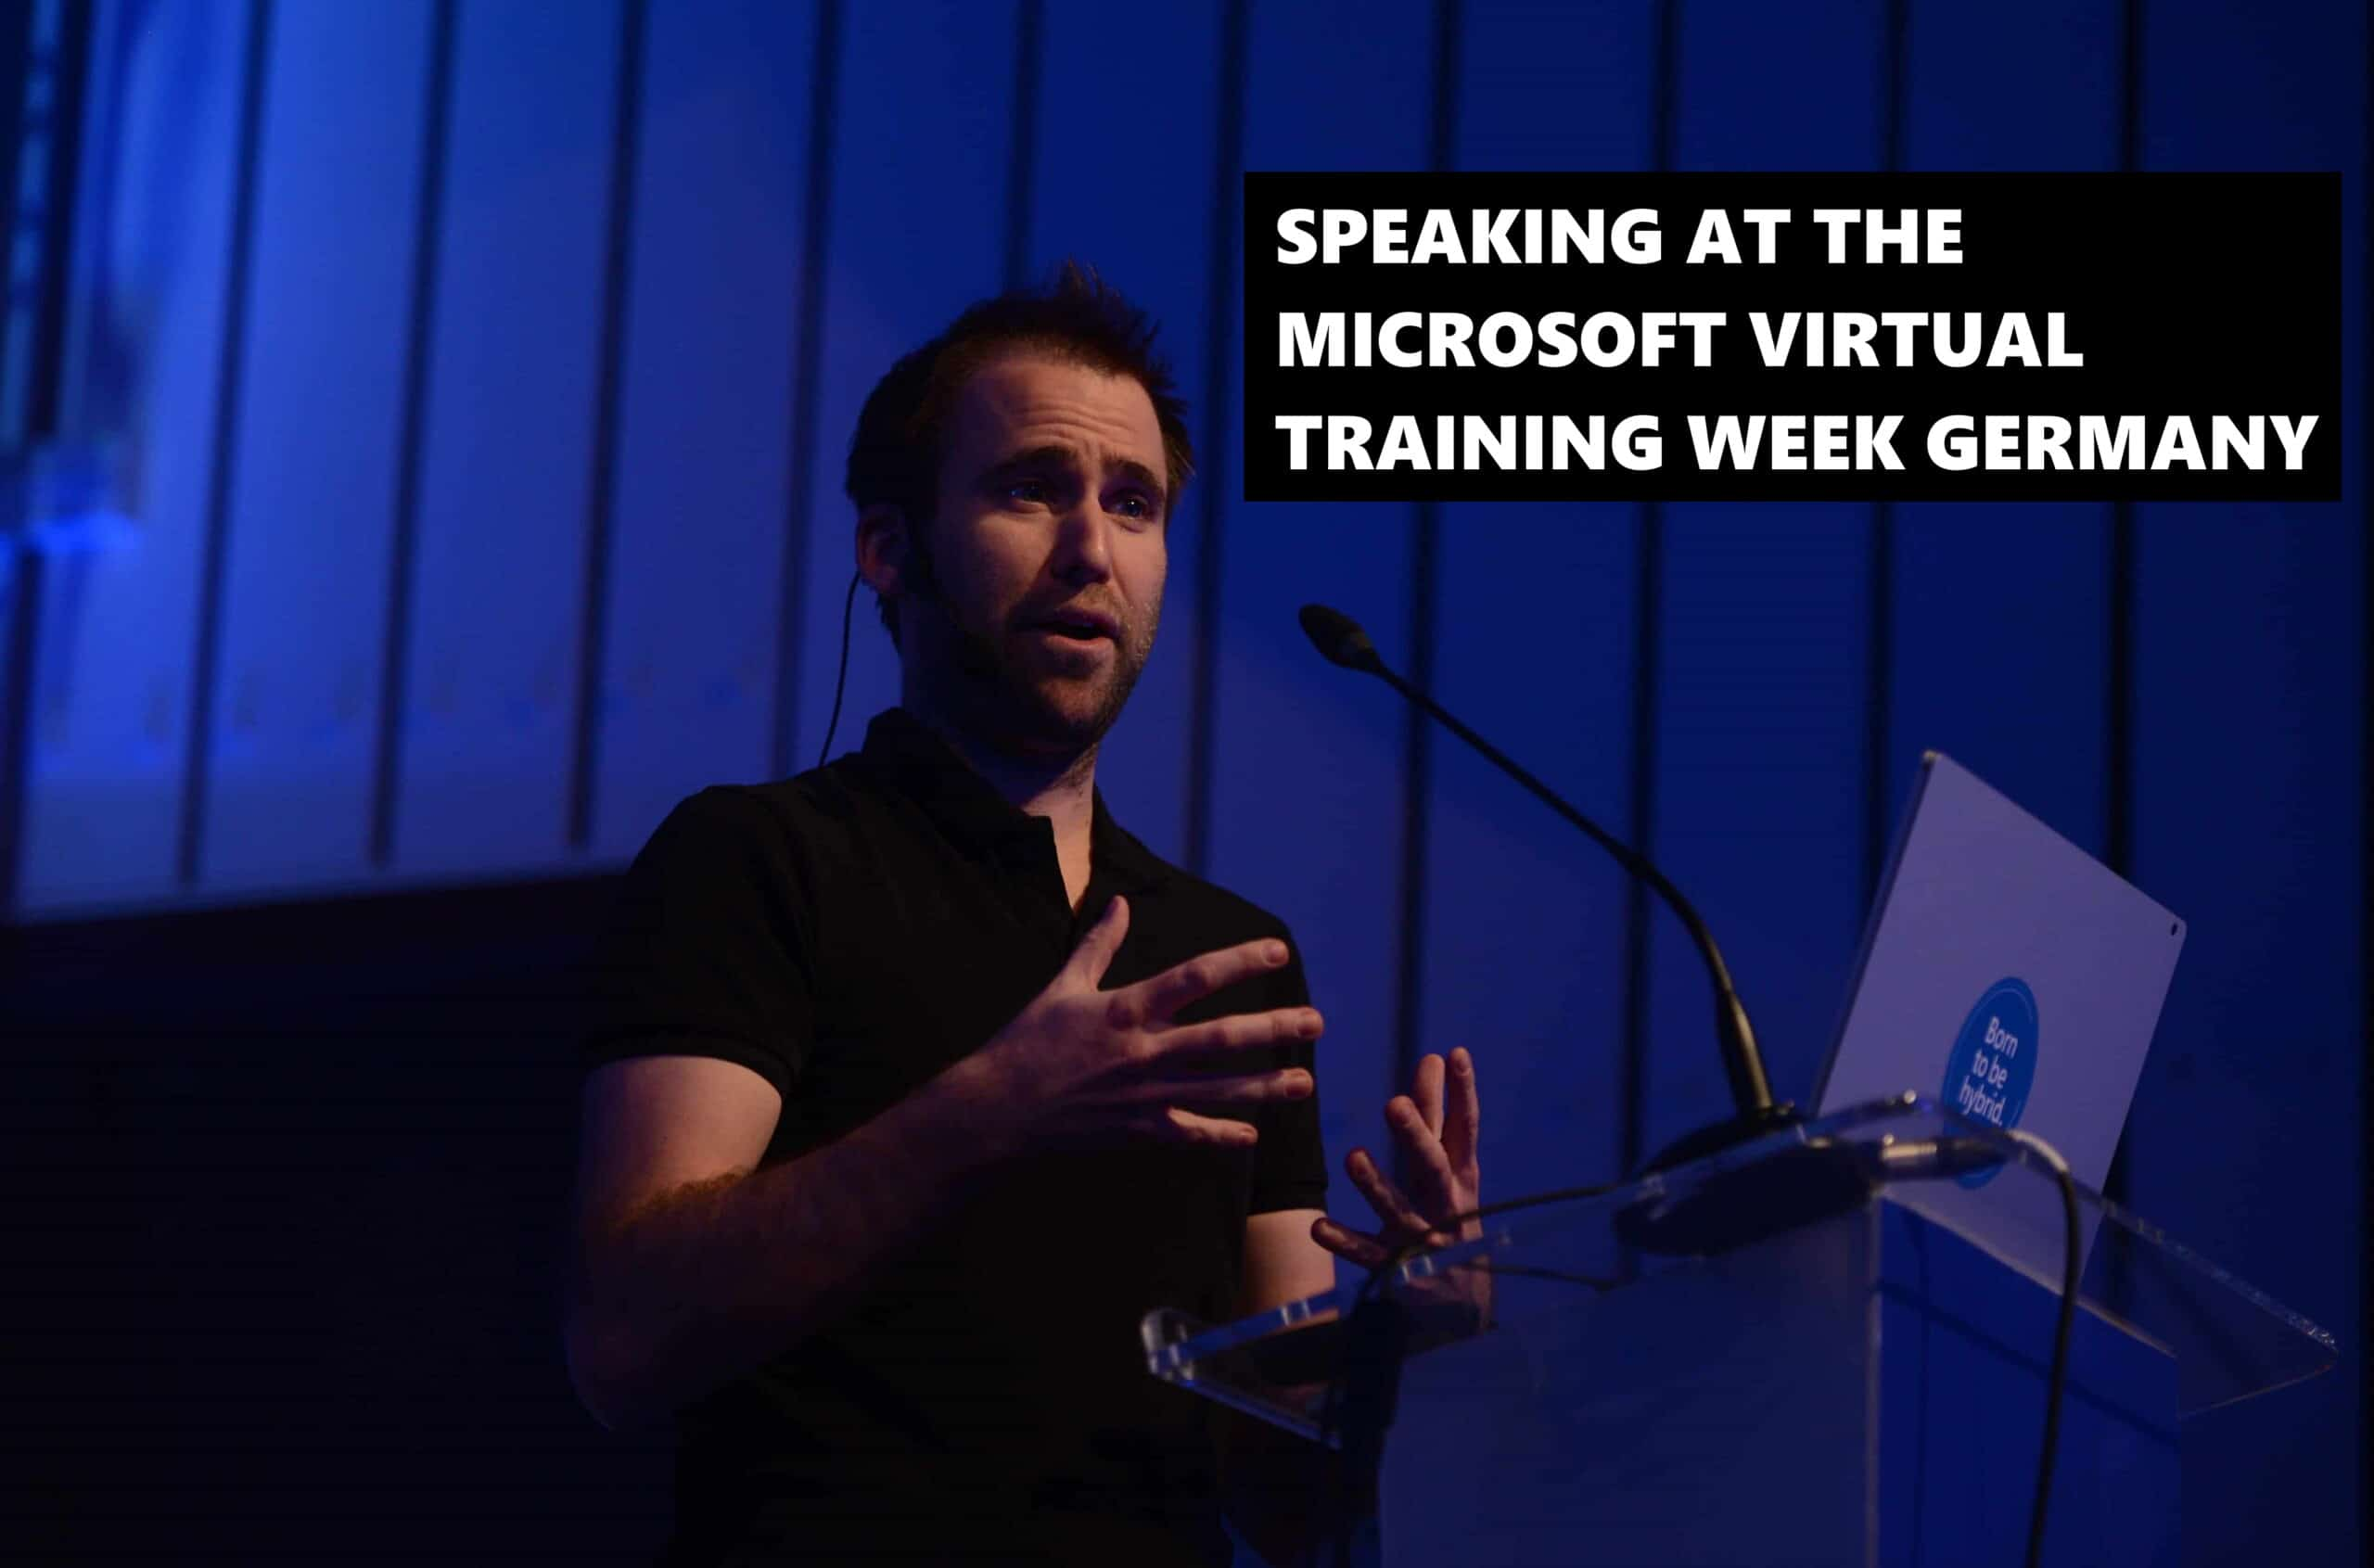 Speaking at Microsoft Virtual Training Week Germany 2020